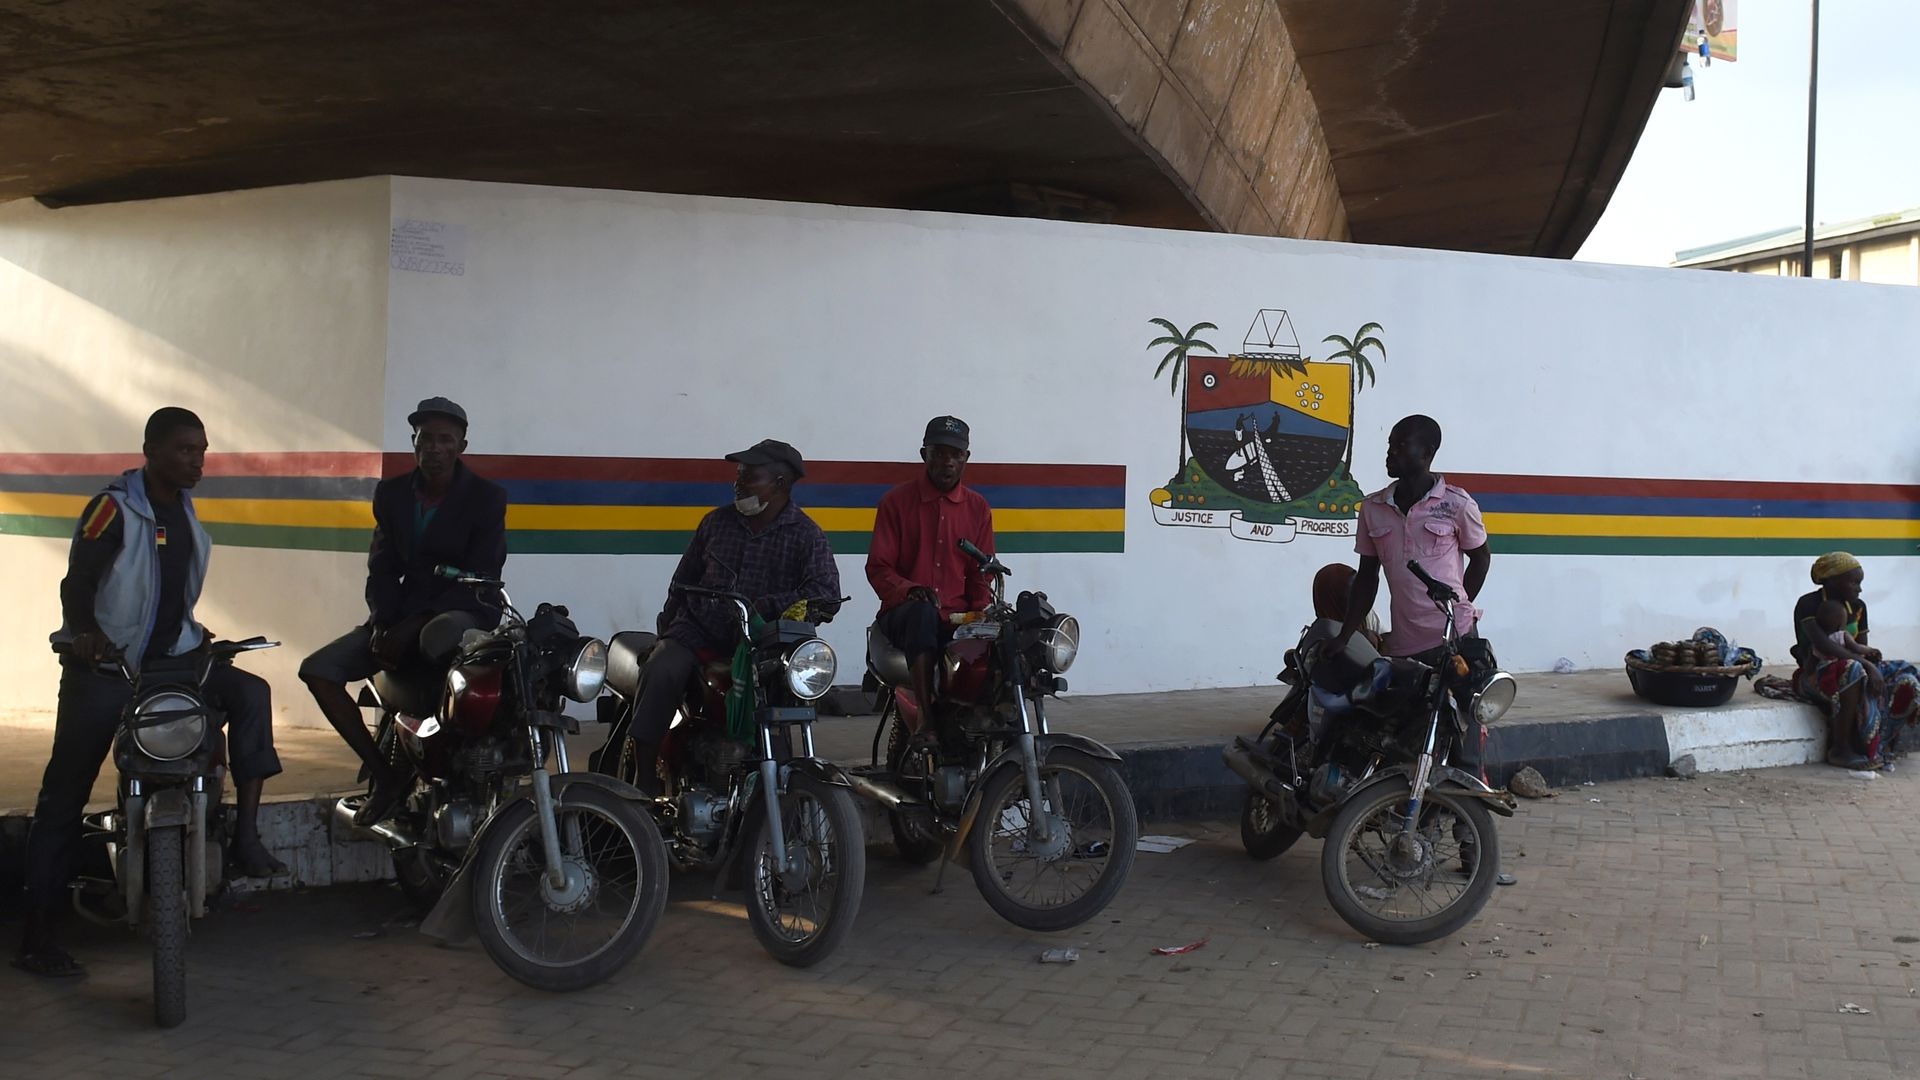 New ride-hail options could help Africa's traffic-clogged megacities